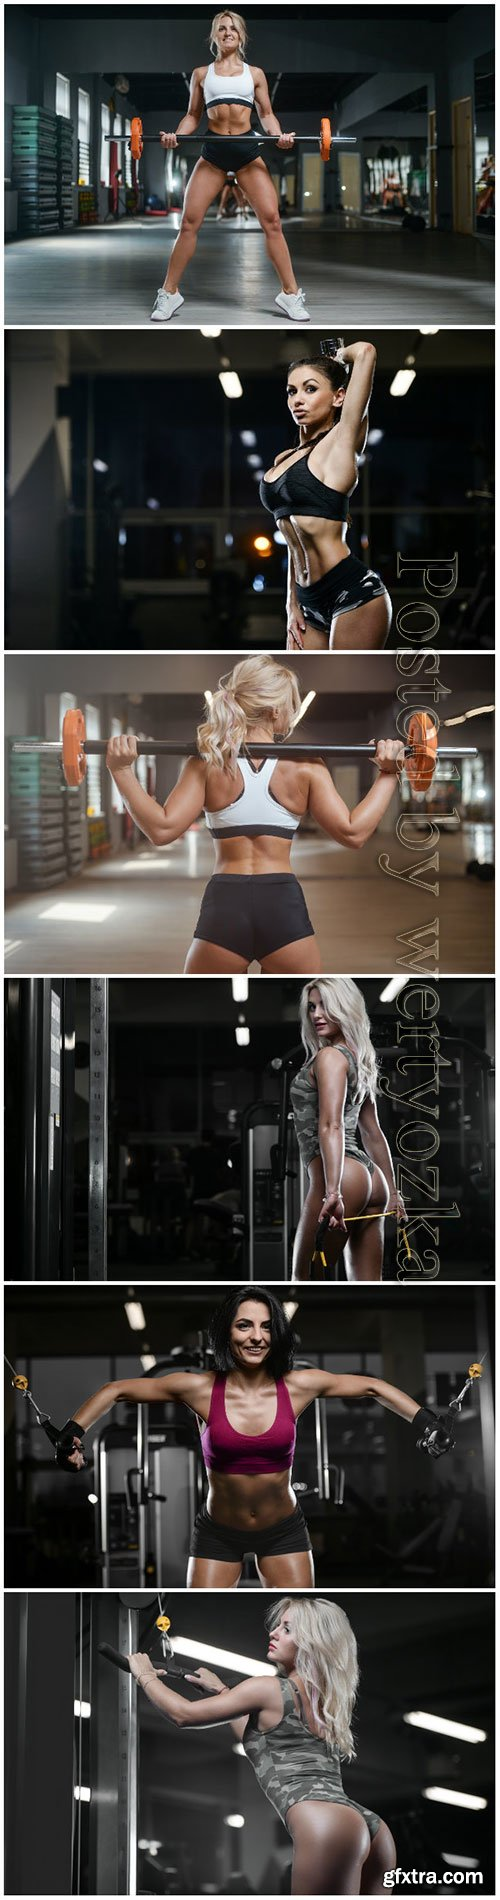 Girls in the gym, beauty and health